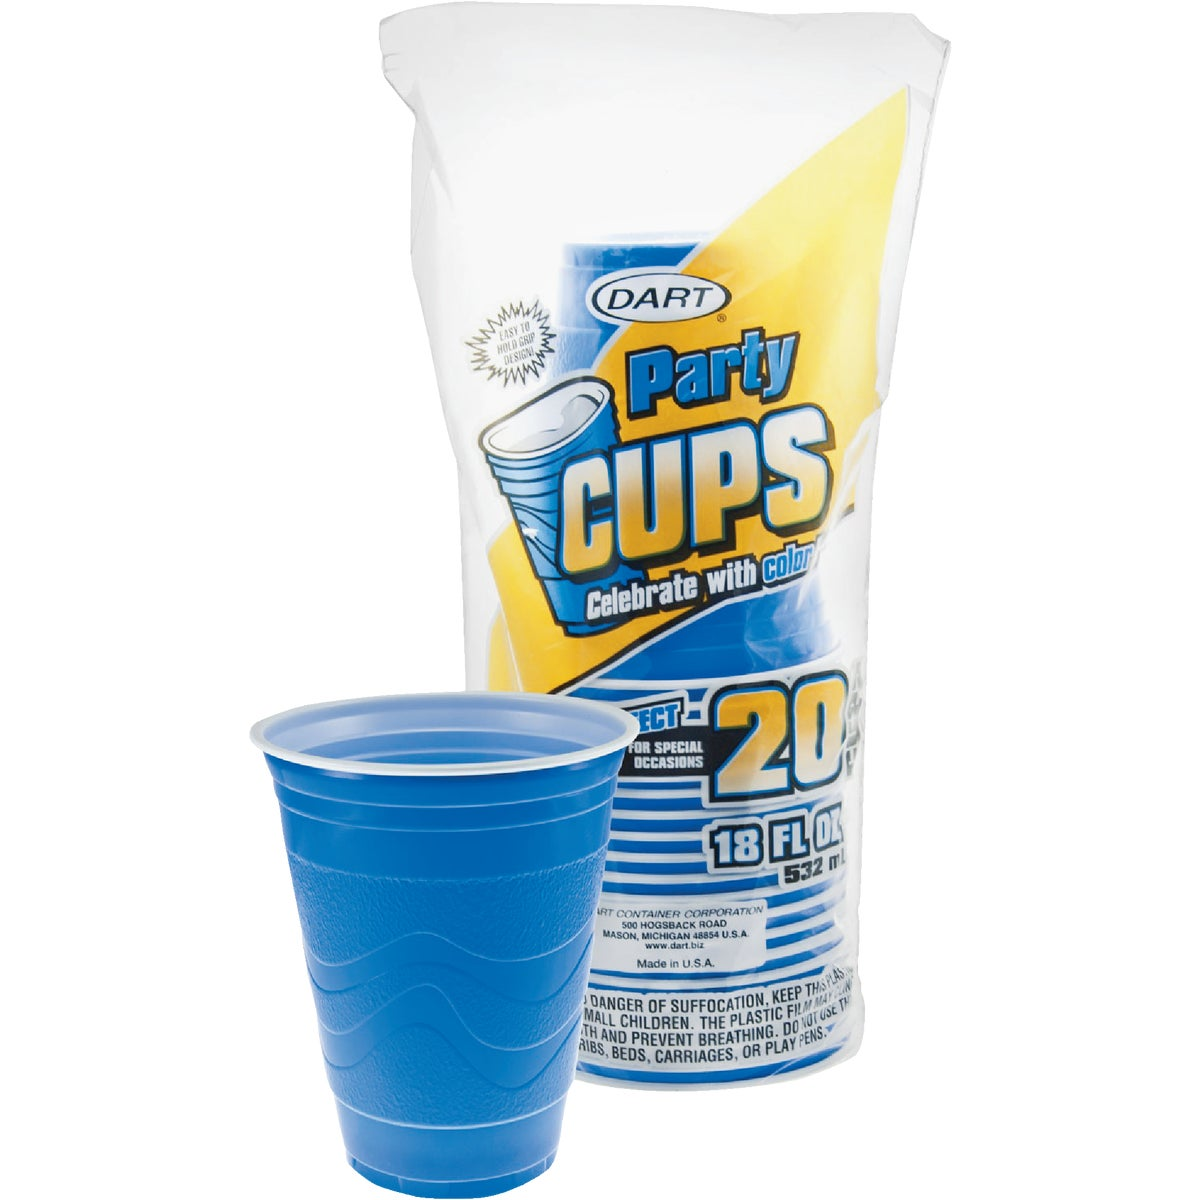 18OZ PLASTIC CUP - 18GB20 by Dart Cont/d Bassett